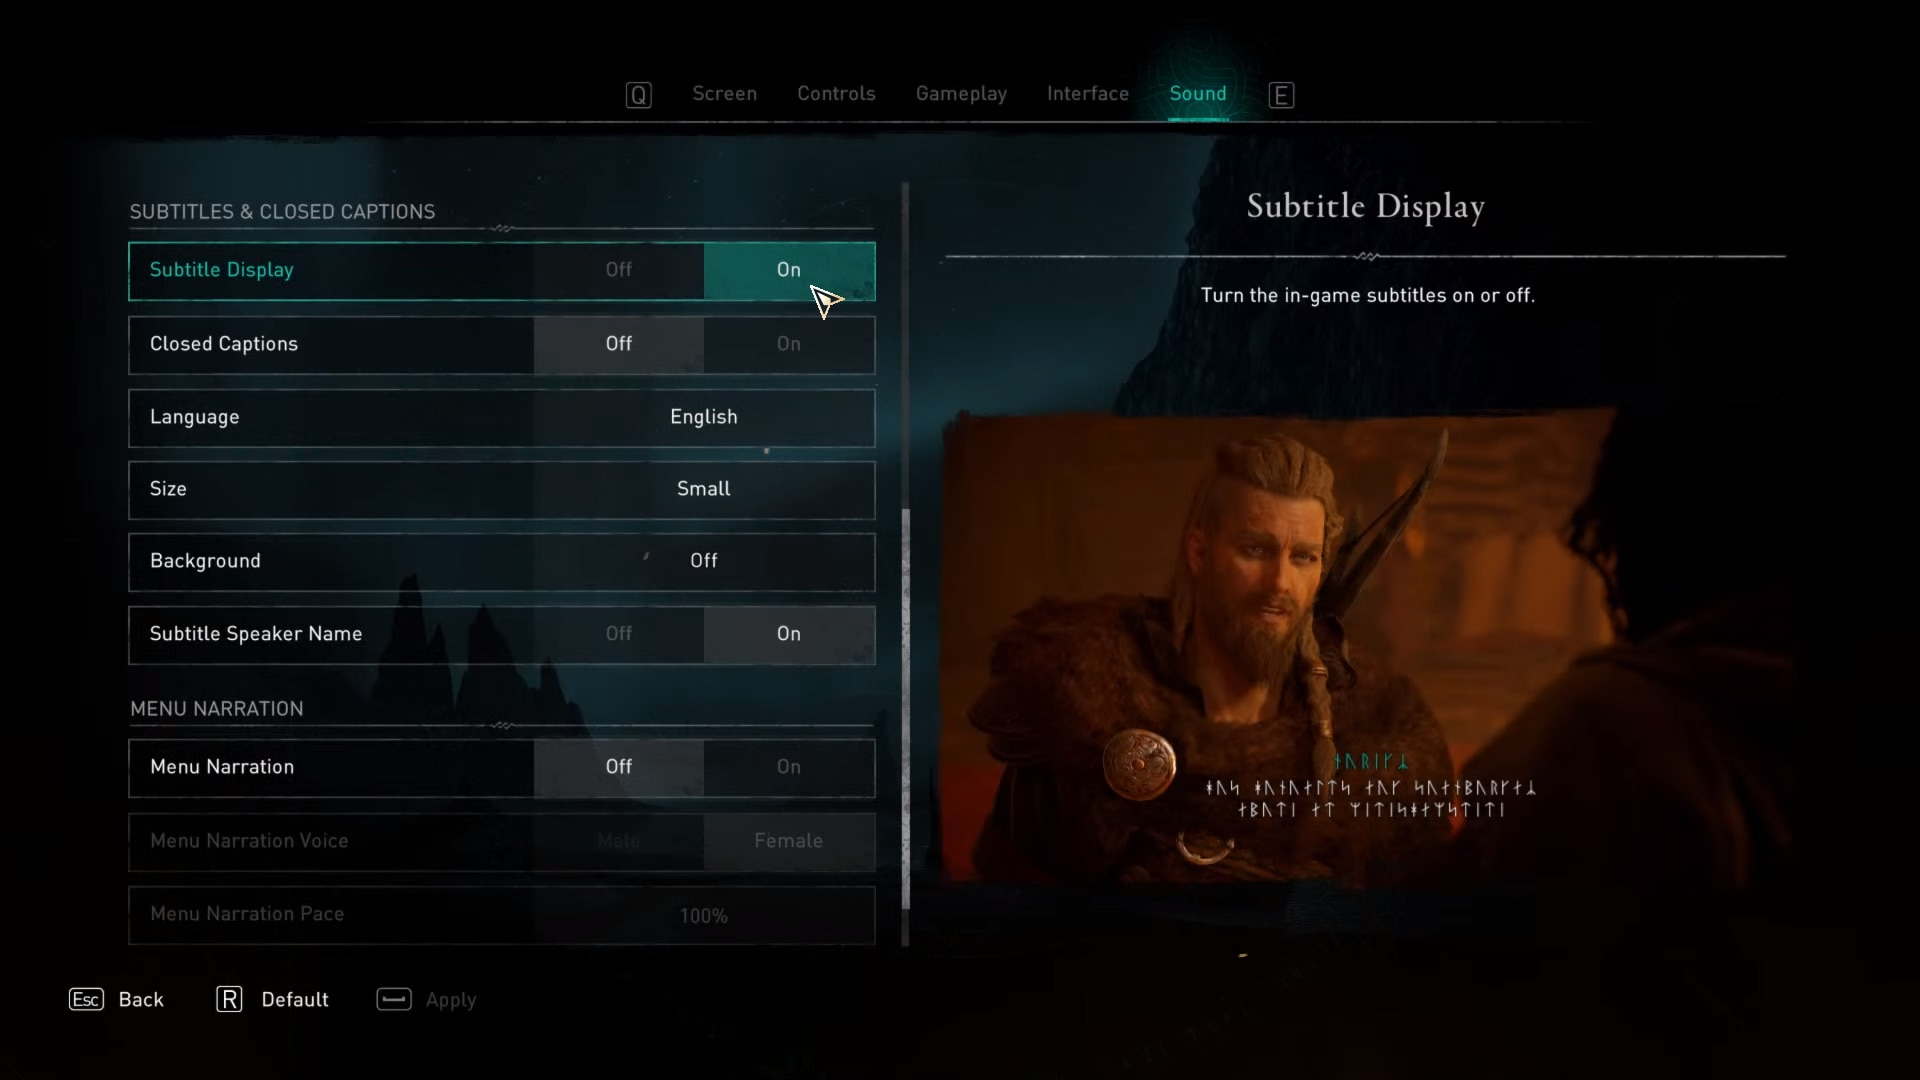 Subtitles toggled on in the sound options of Assassin's Creed Valhalla